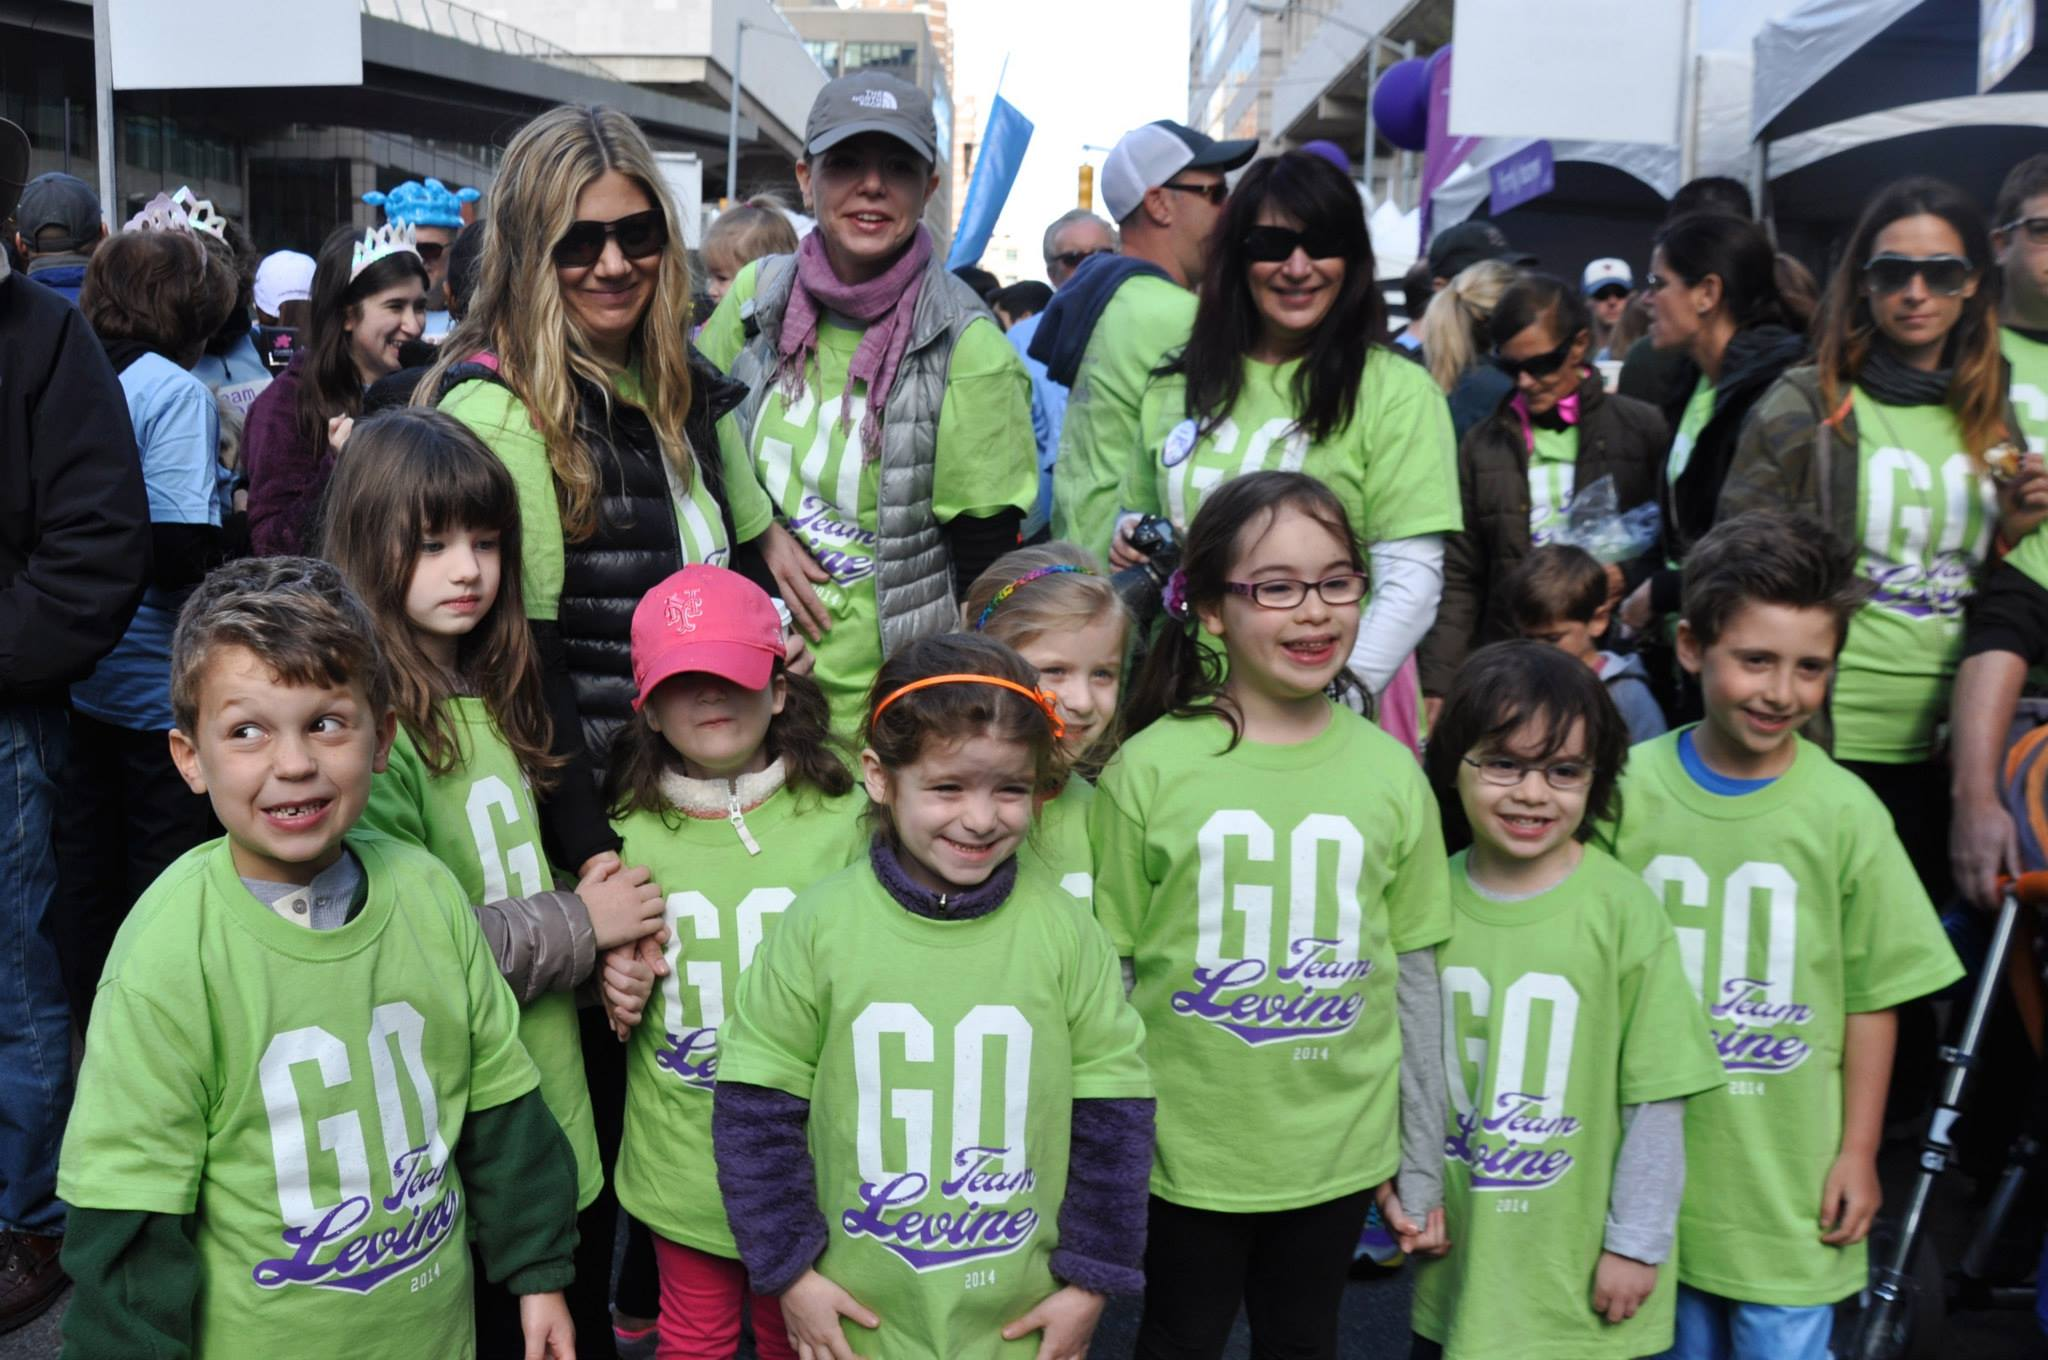 team-levine-walkers-at-the-2015-march-for-babies-walk_16297477933_o.jpg